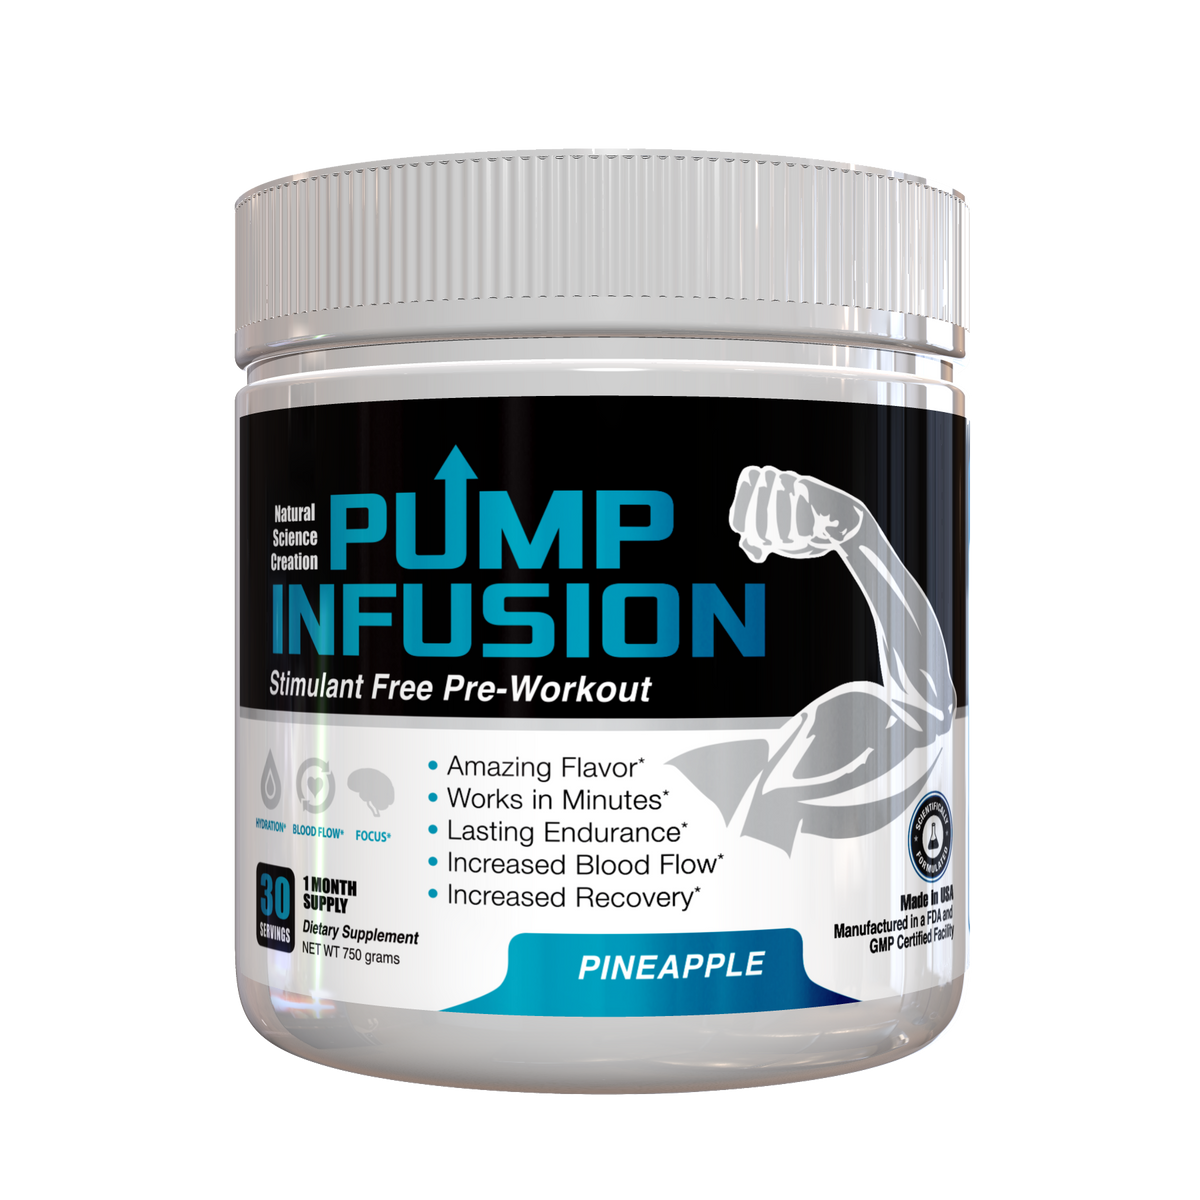 NEW! Pump Infusion Pineapple (Stimulant Pre-Workout)